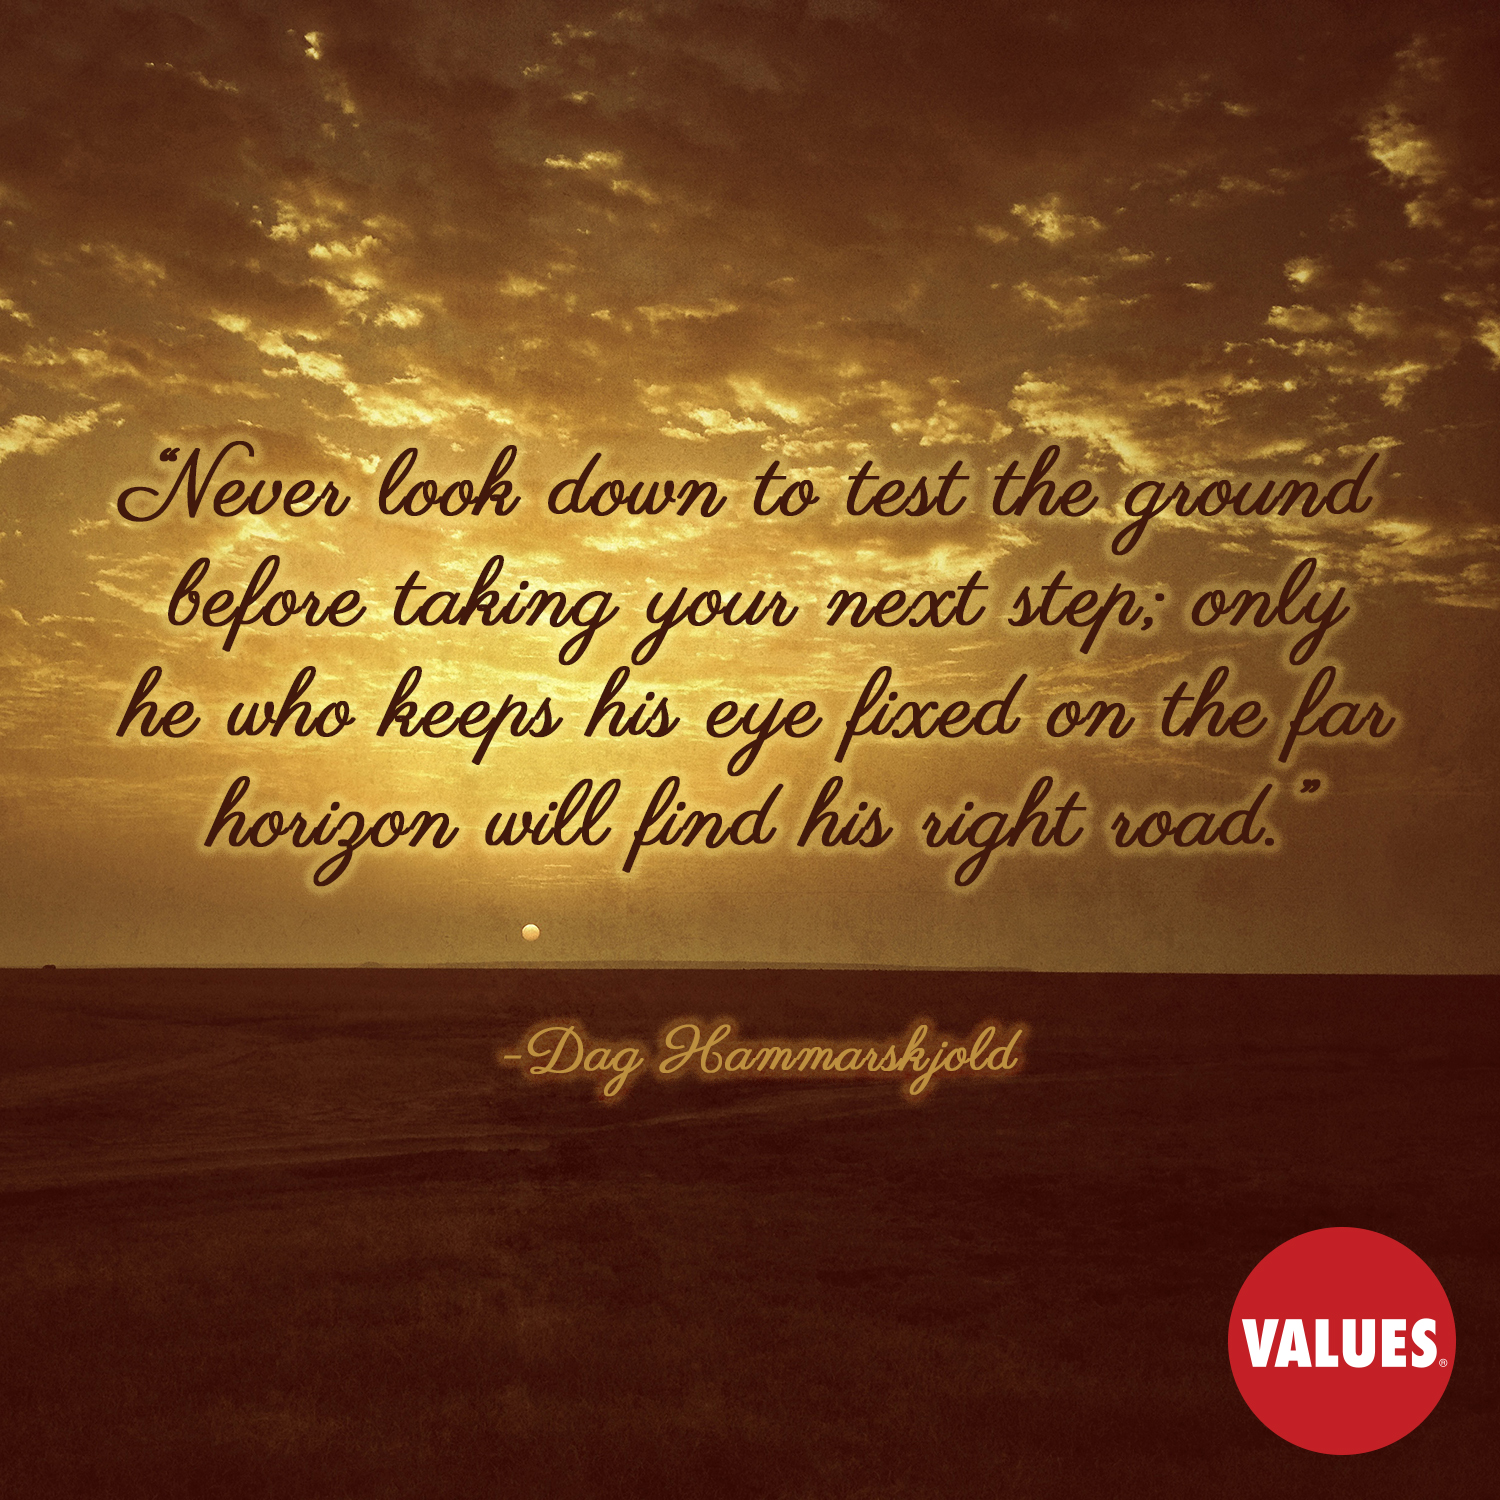 Never look down to test the ground before taking your next step; only he who keeps his eye fixed on the far horizon will find his right road. —Dag Hammarskjold